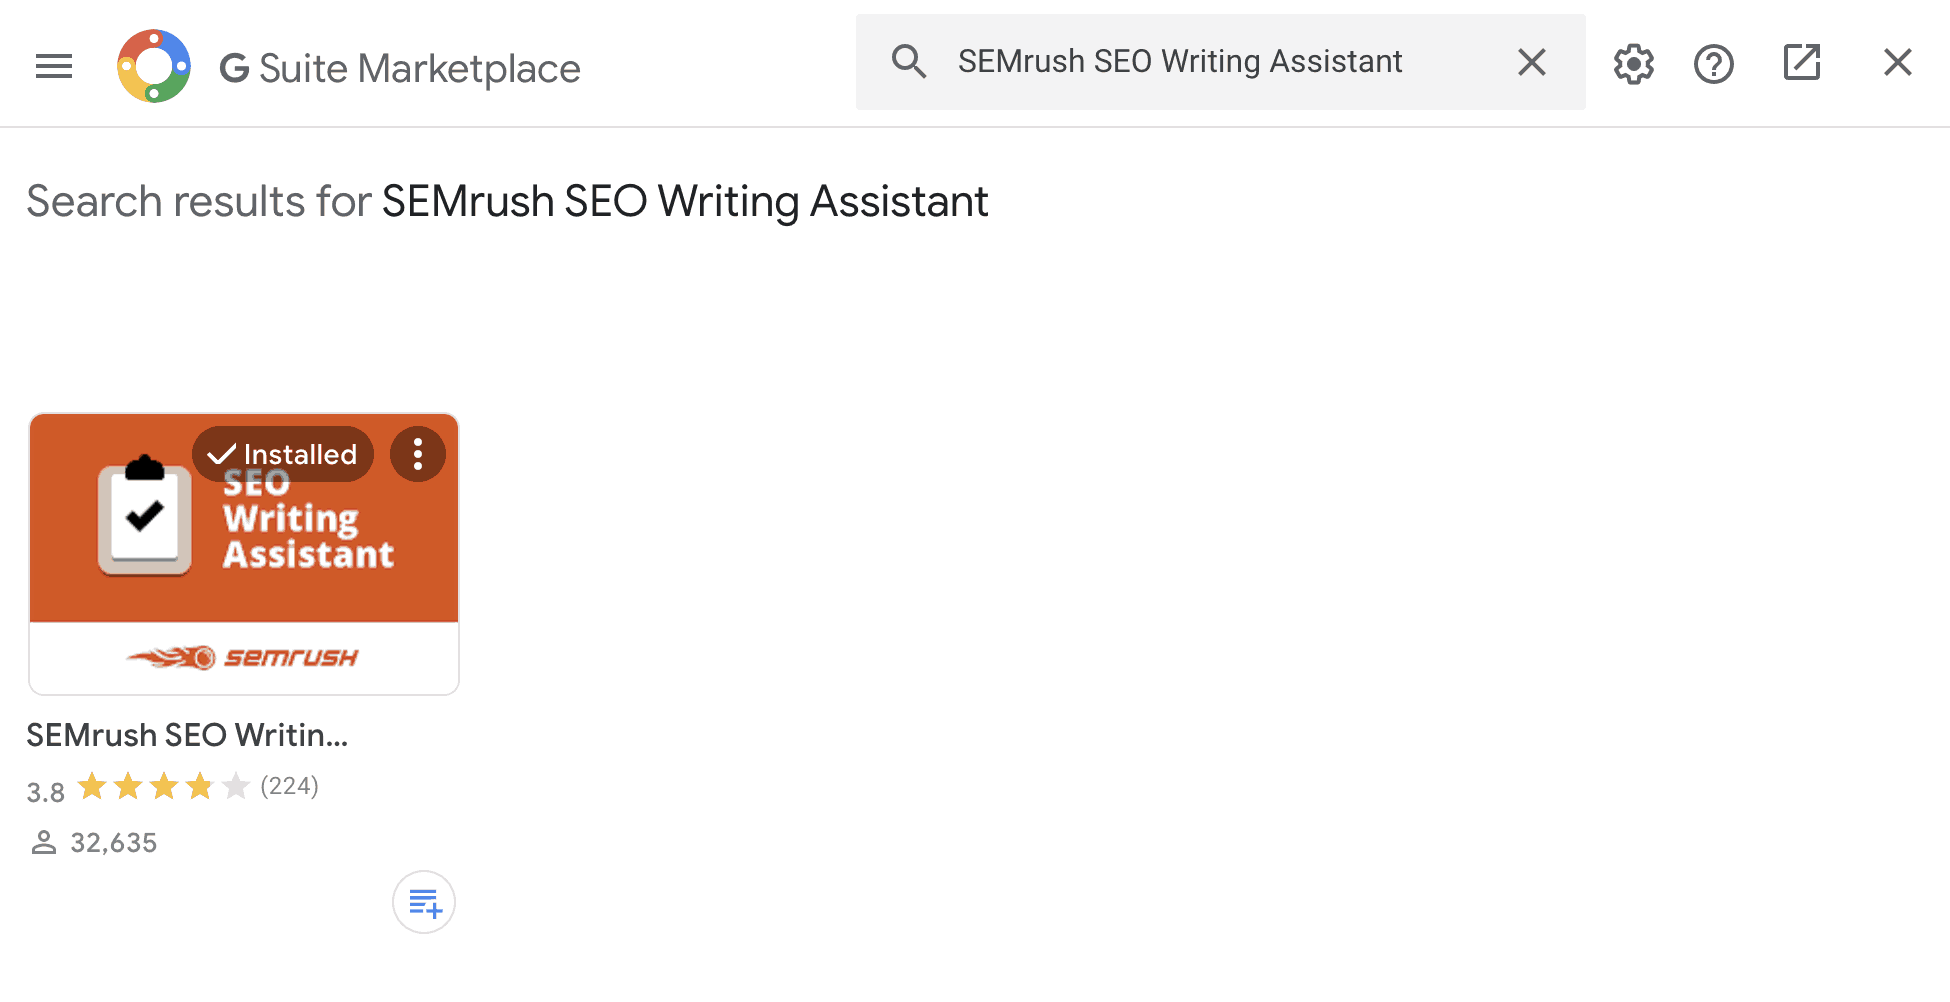 SEMrush SEO Writing Assistant Google Docs Add-on